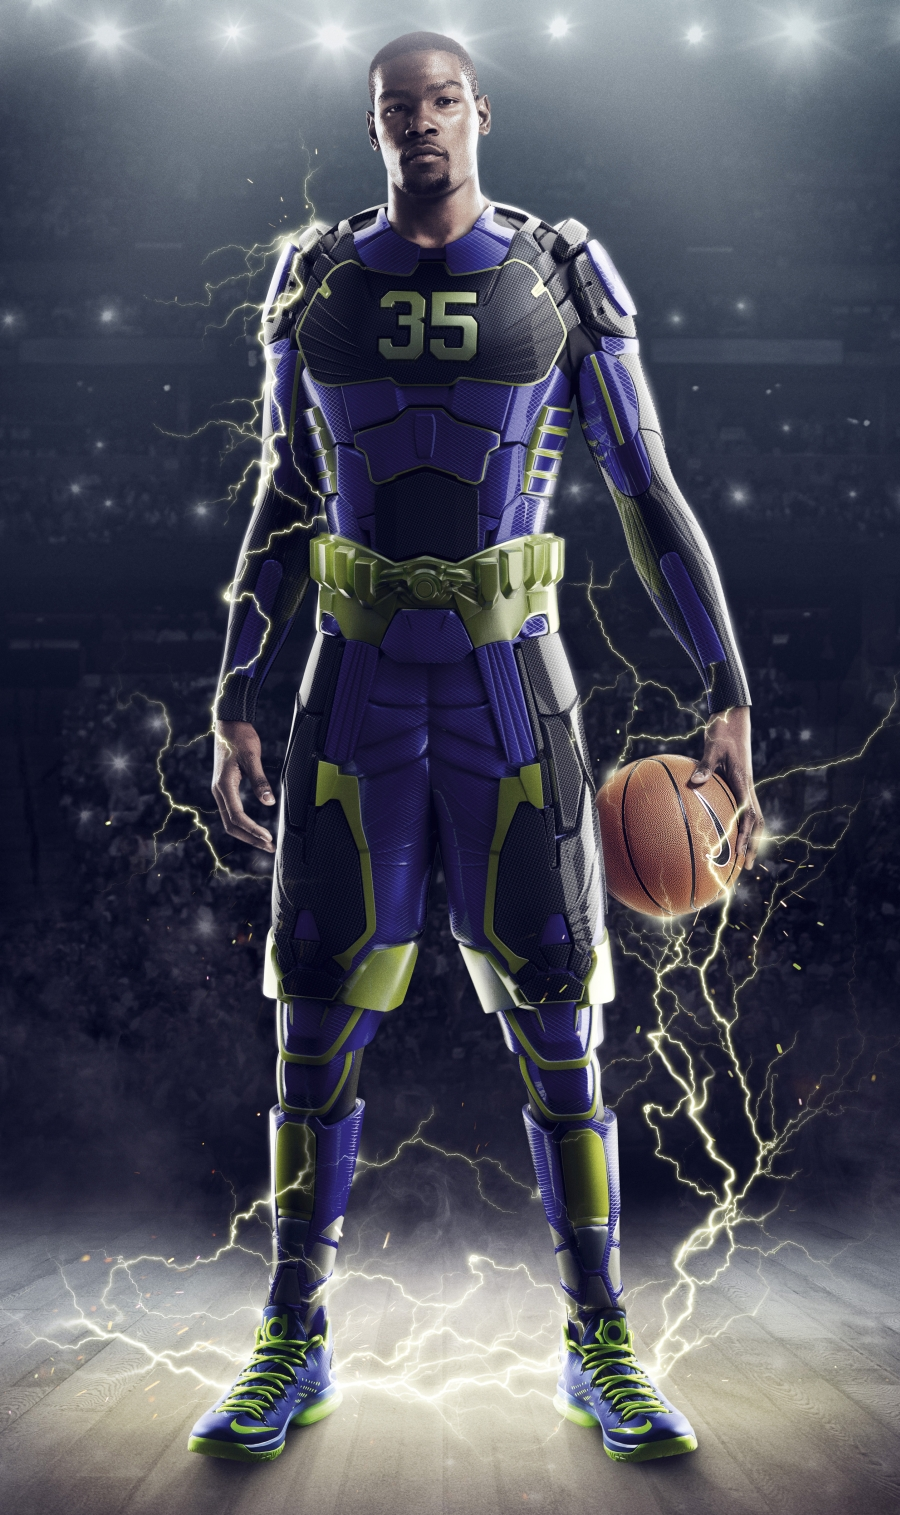 Kevin Durant Wallpaper 2013 Hd Nike Images amp Pictures Becuo